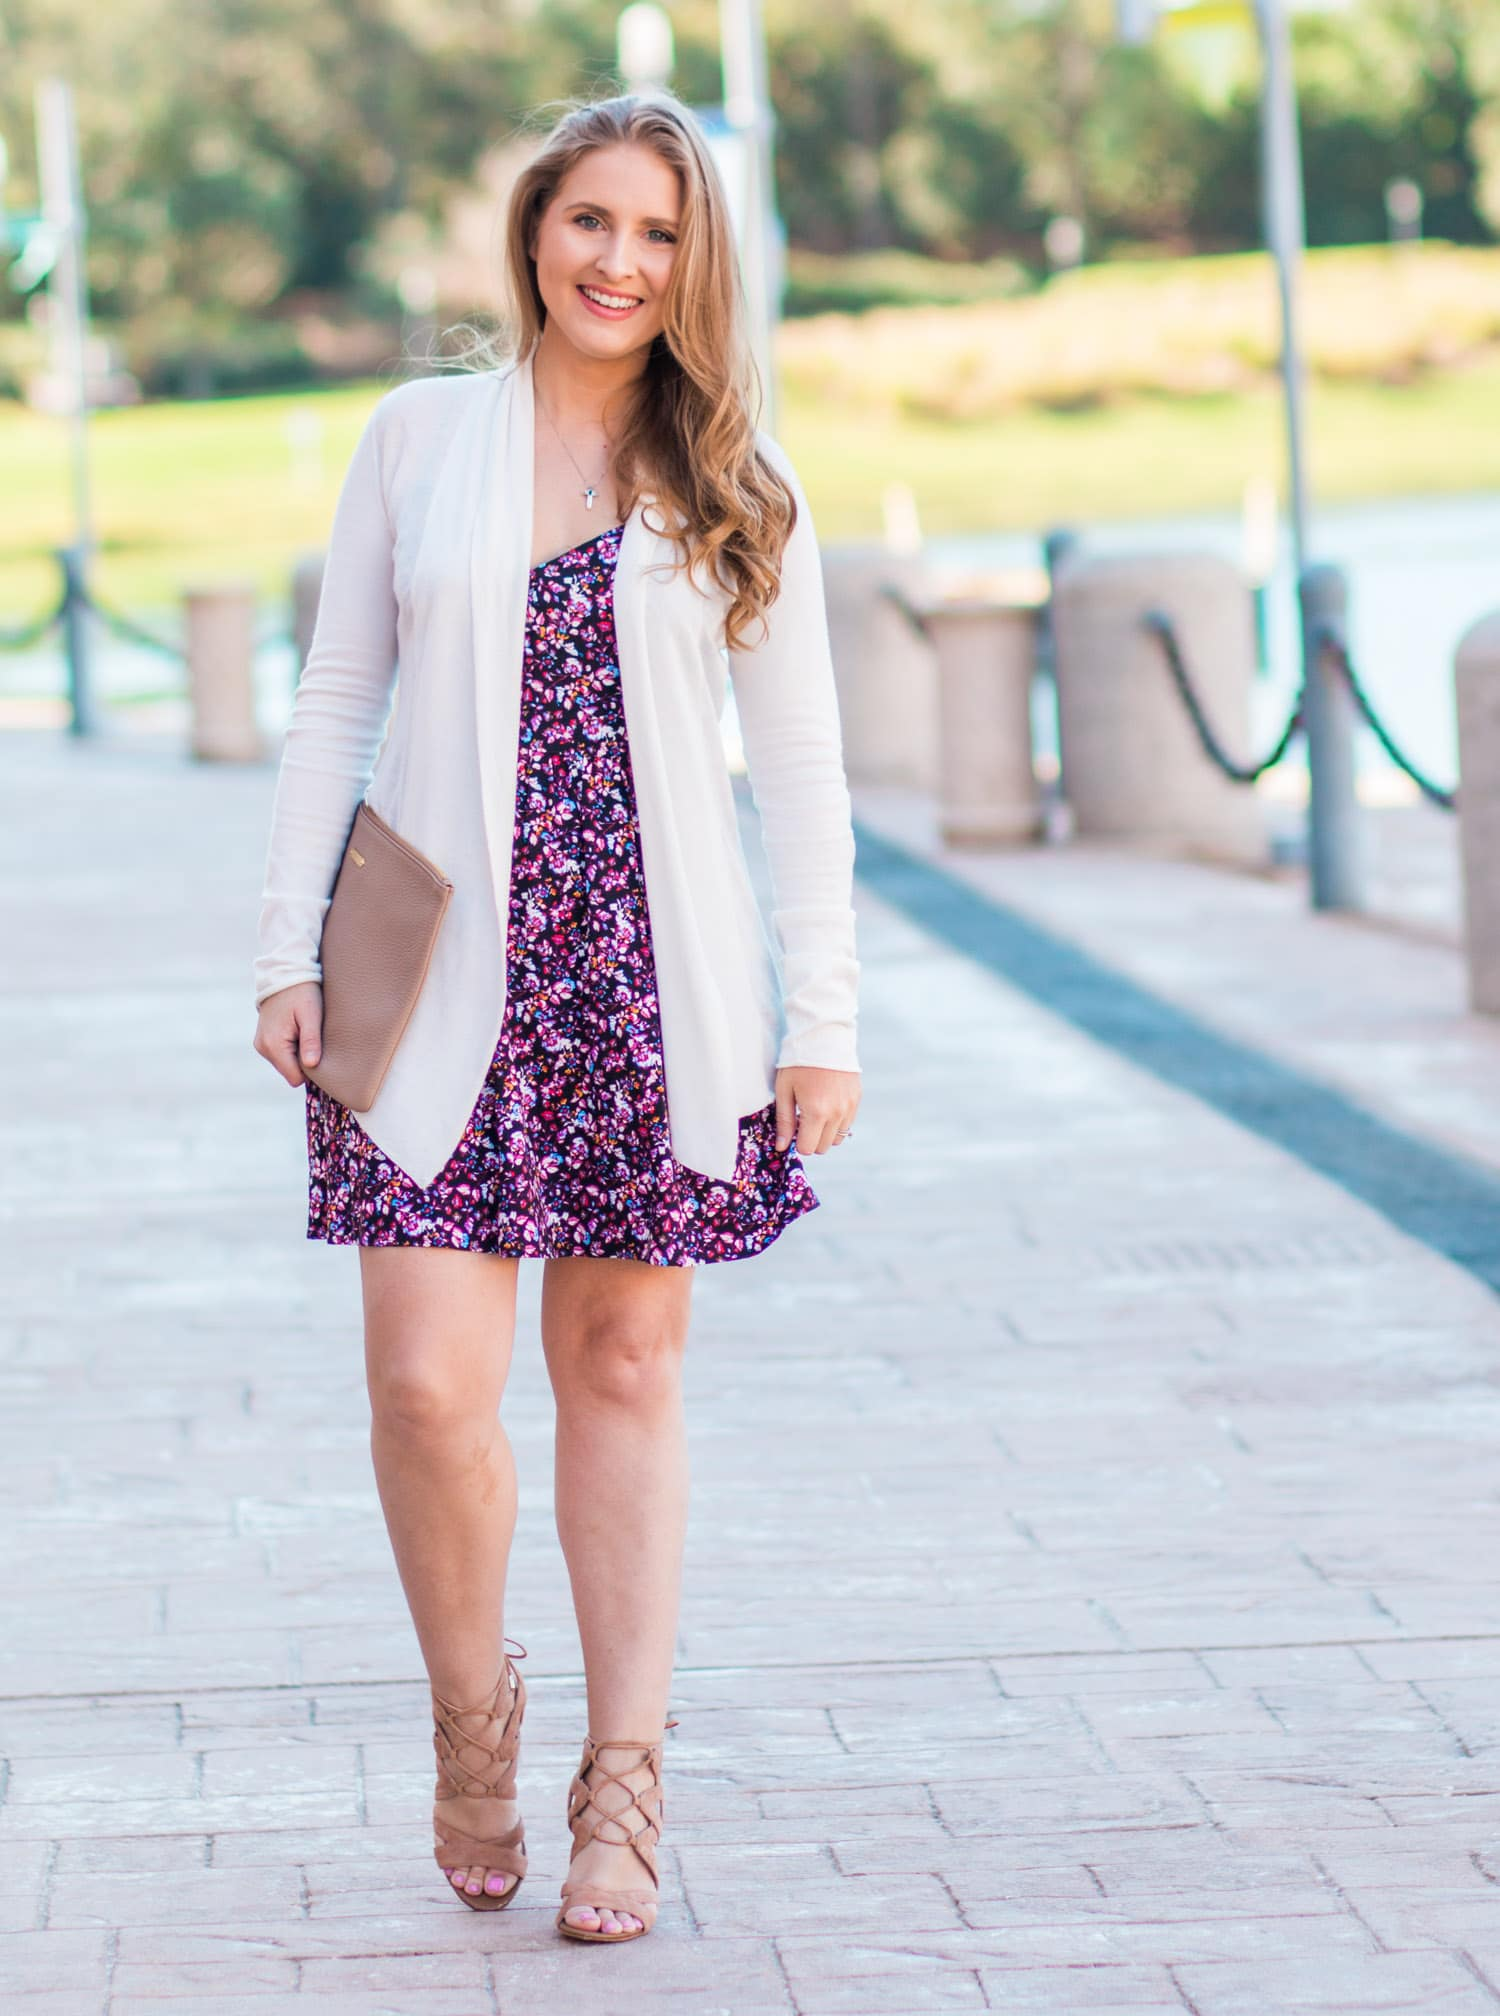 Floral style dress outfit